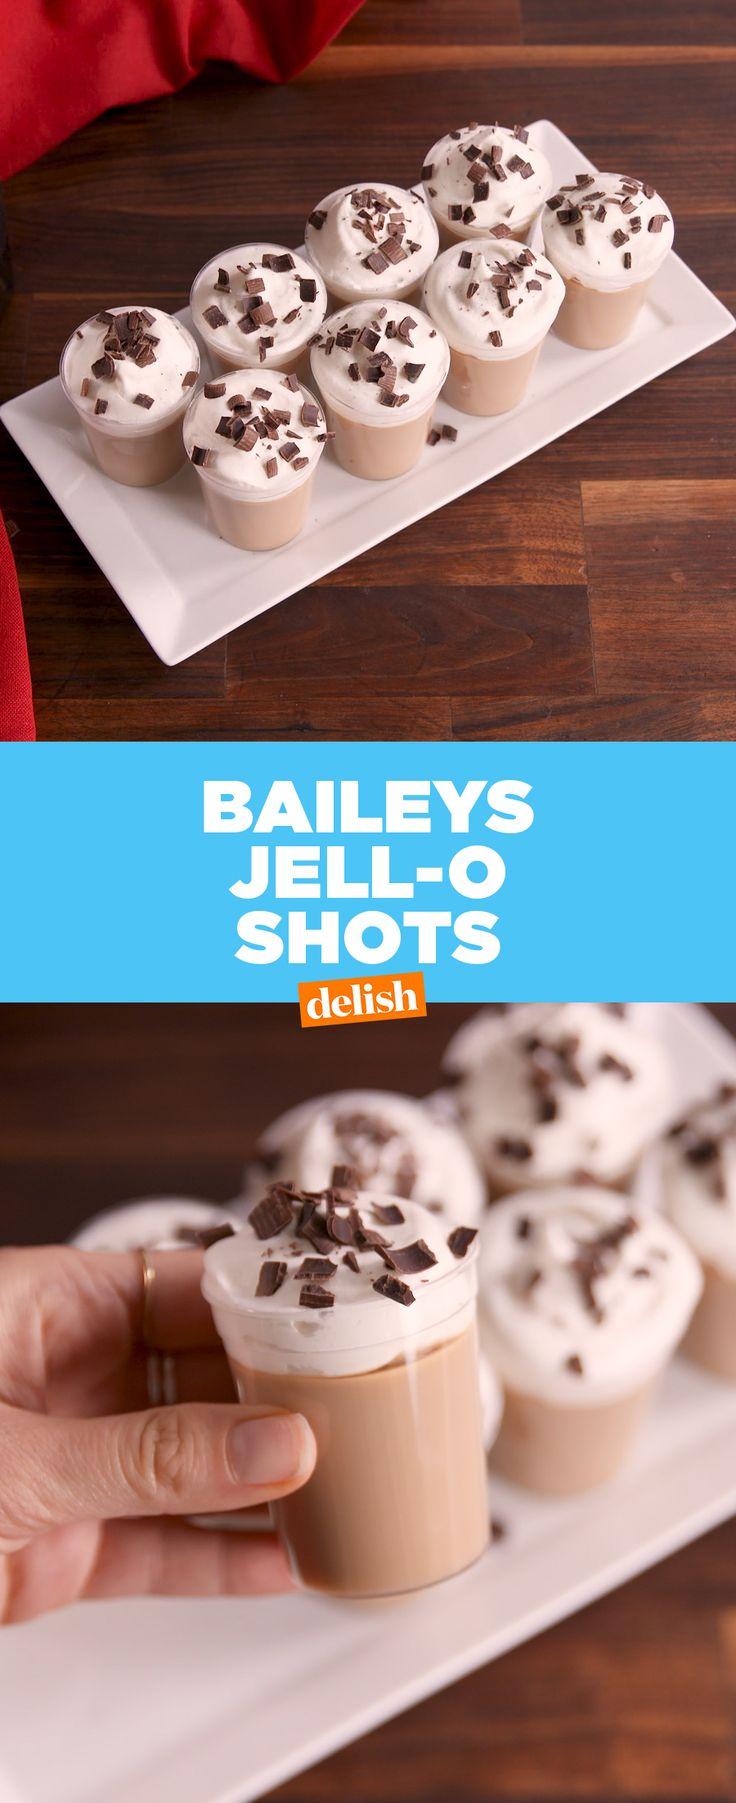 Bailey's Jell-o Shots will keep you warm all winter long. Get the recipe at Delish.com. #baileys #jello #shot #alcohol #recipe #delish #easyrecipe